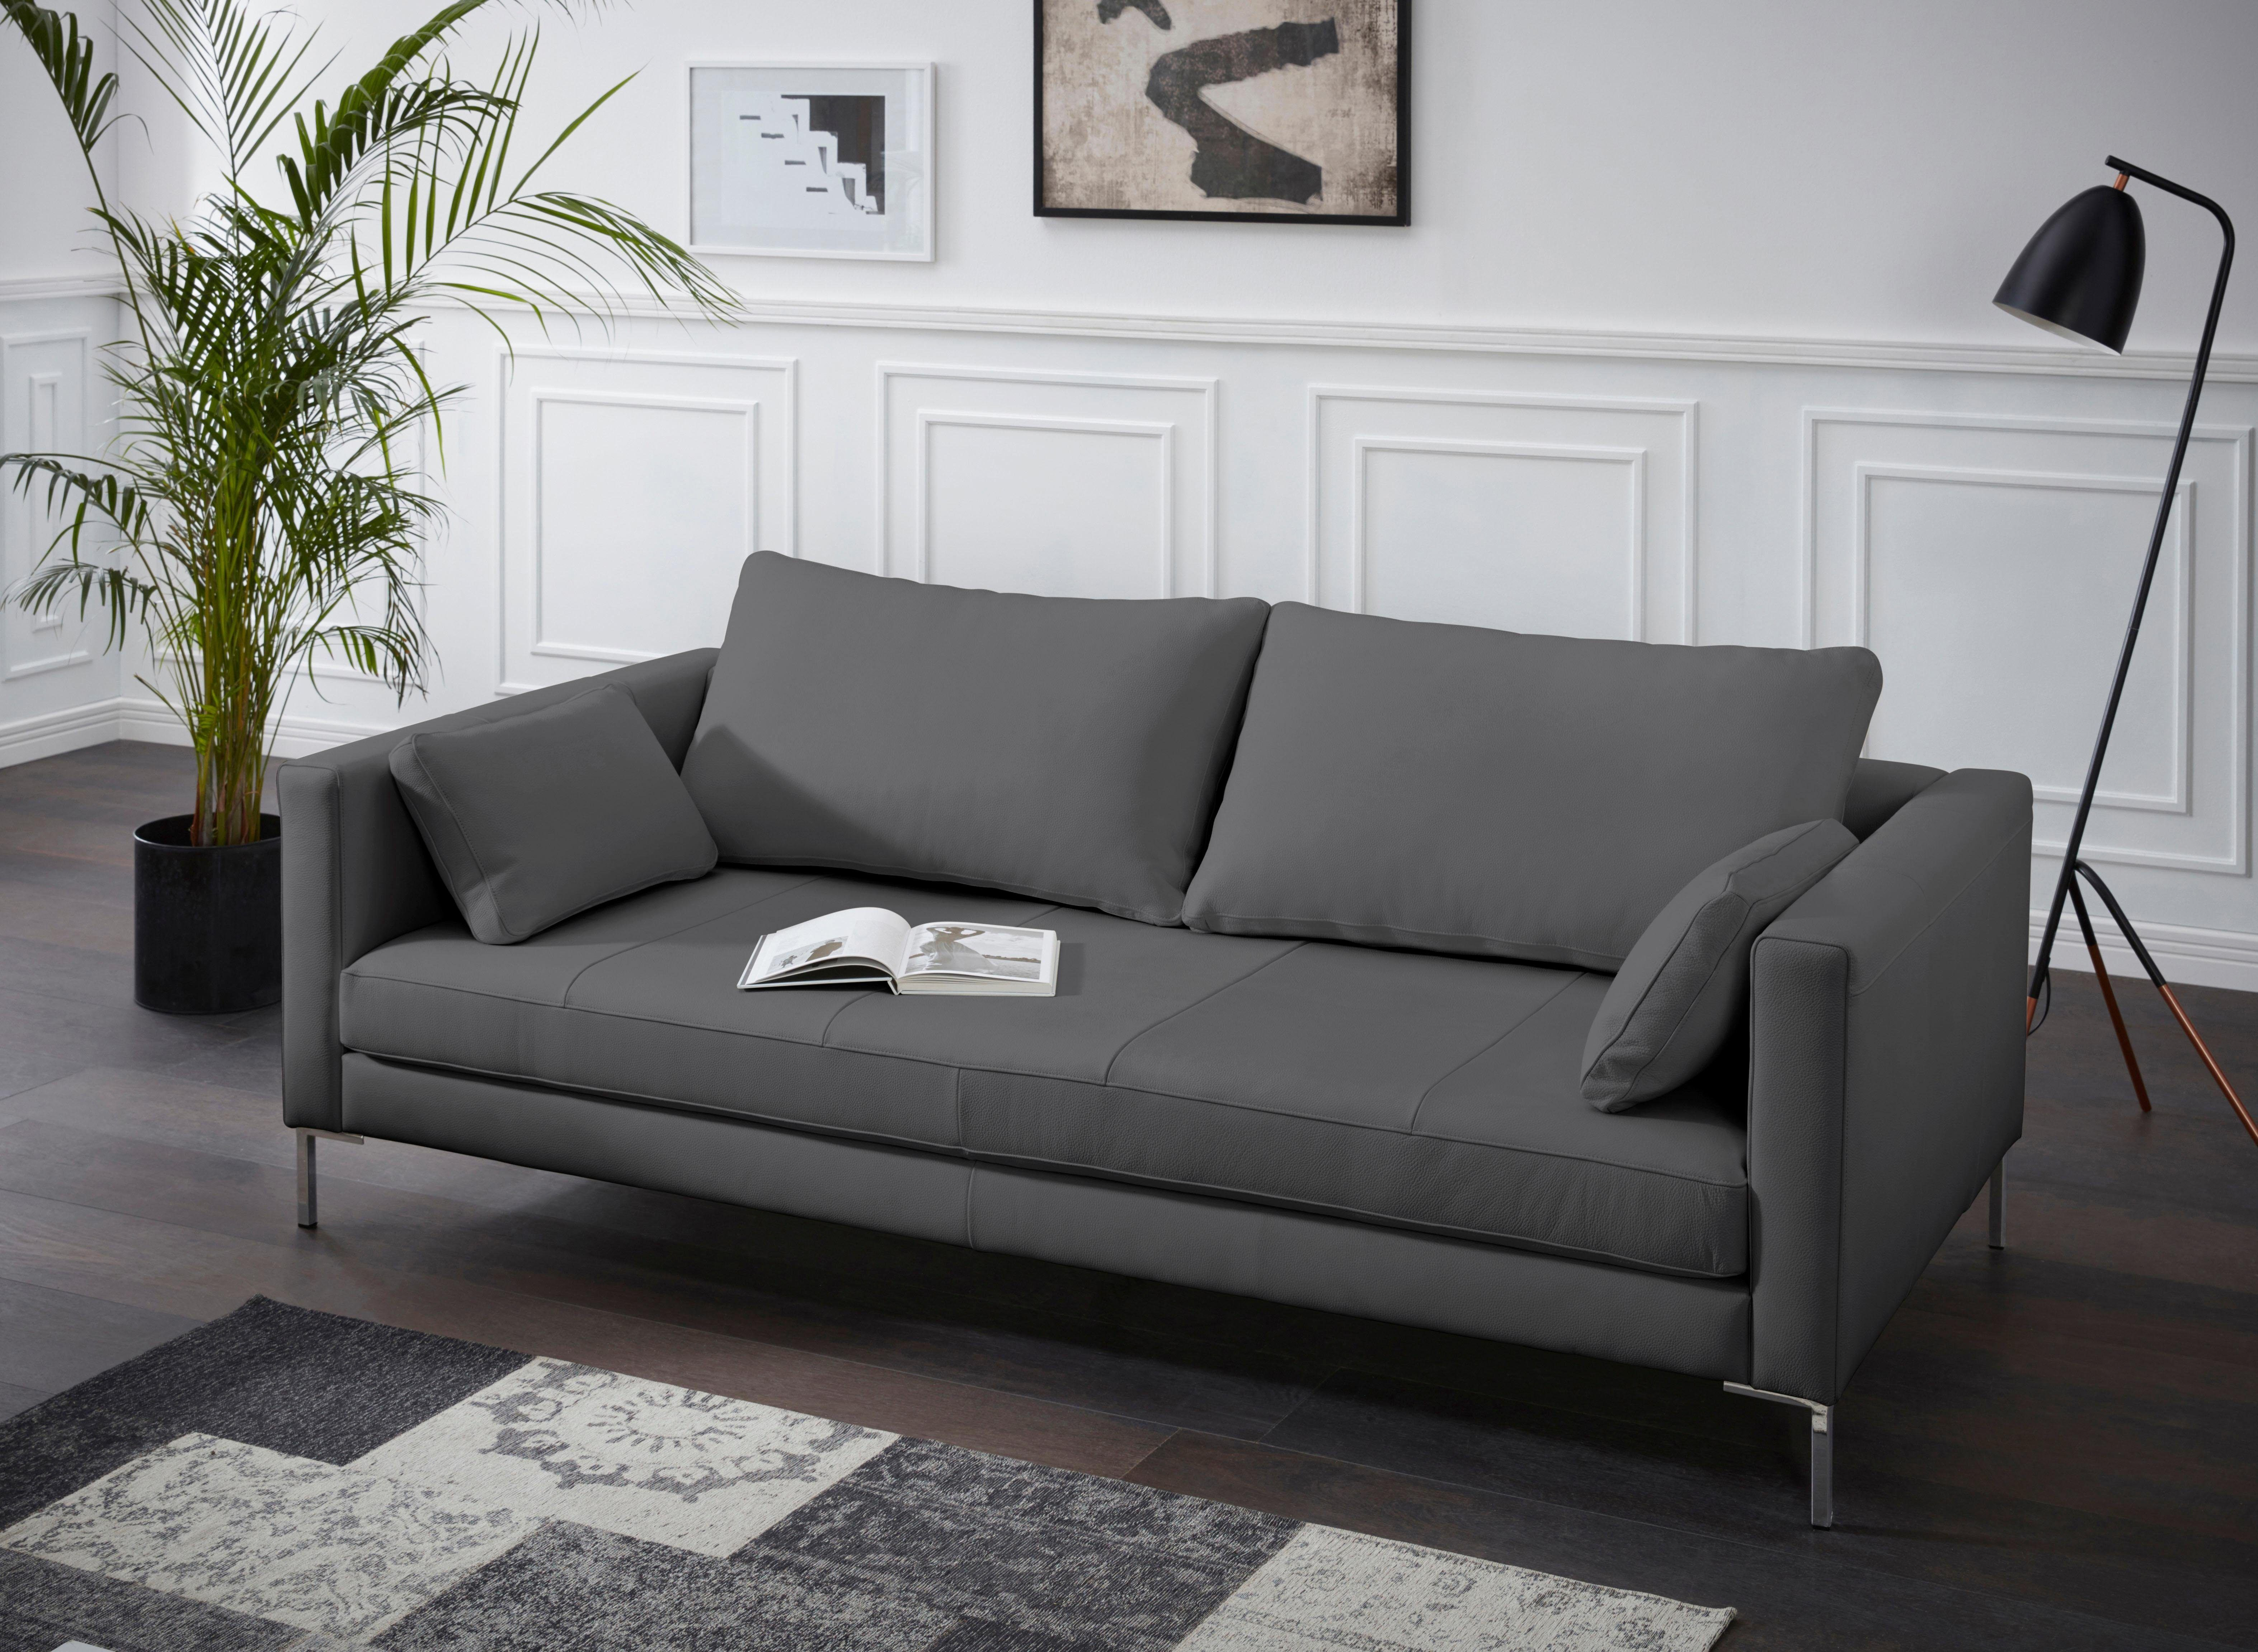 Pin By Ladendirekt On Sofas Couches Sofa Home Decor Couch